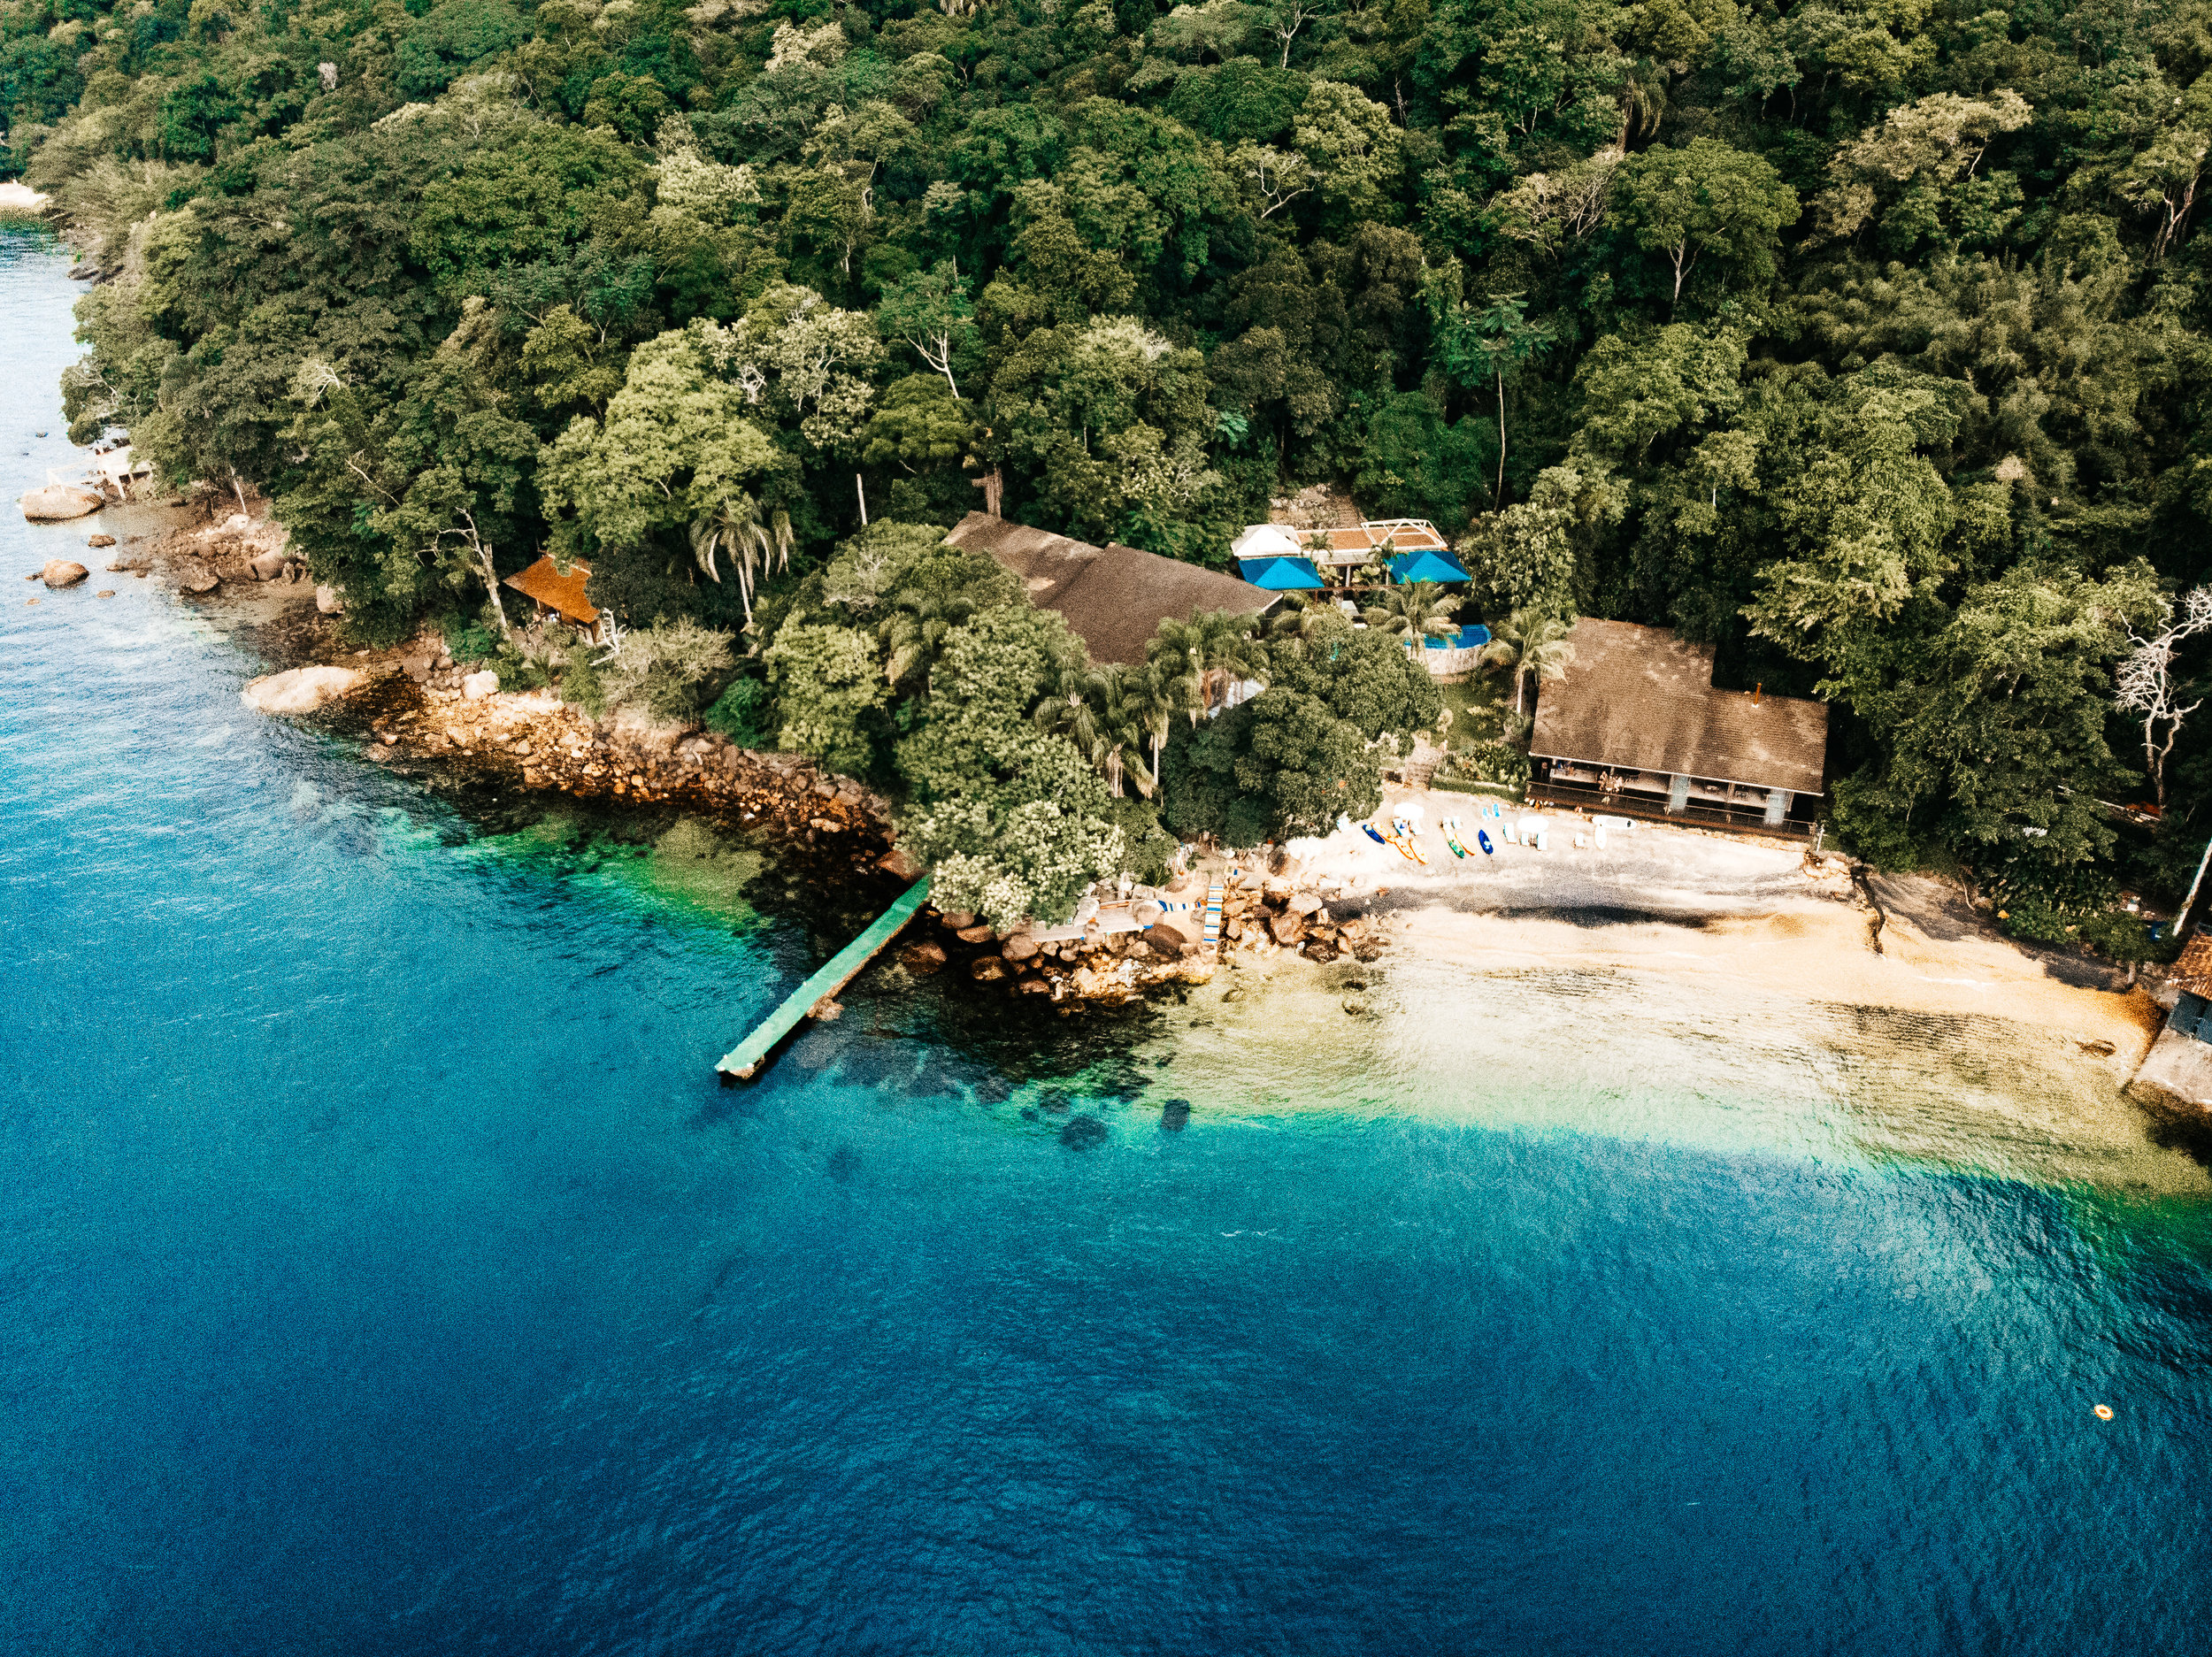 Travel-Guide-to-Ilha-Grande-Brazil-the-perfect-island-hopping-wellness-oasis -The-Escape-Artists